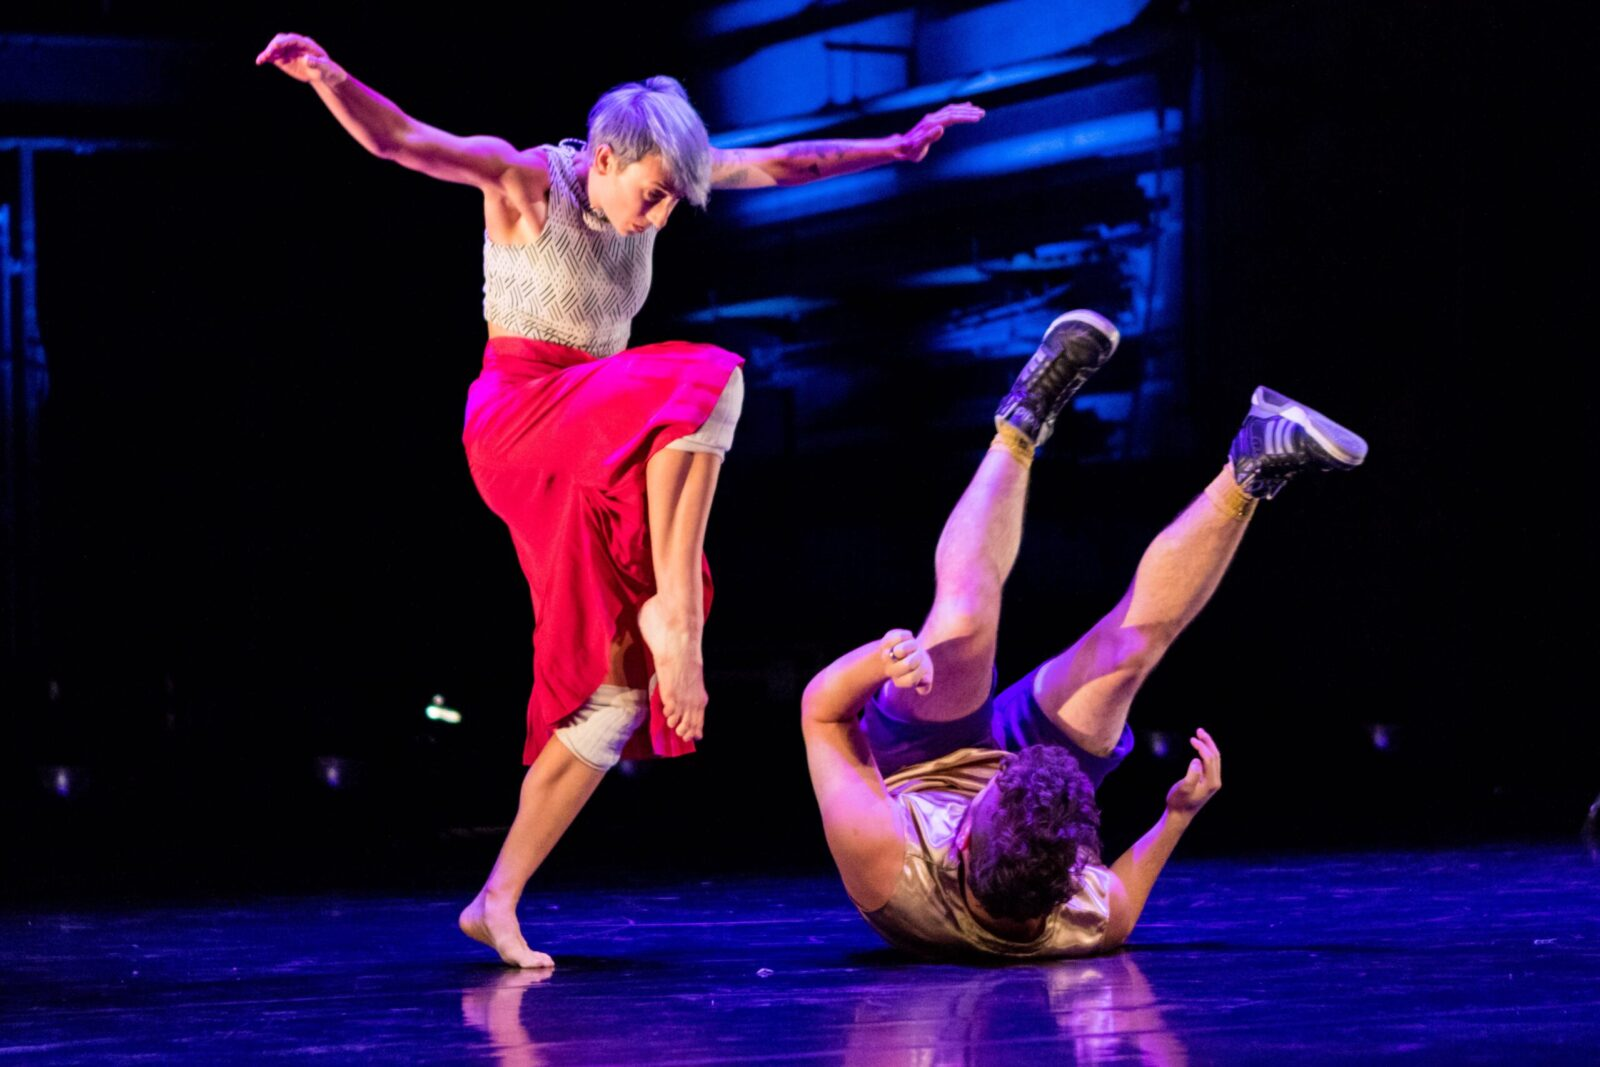 A dancer hovers over another dancer who is rolling on the ground